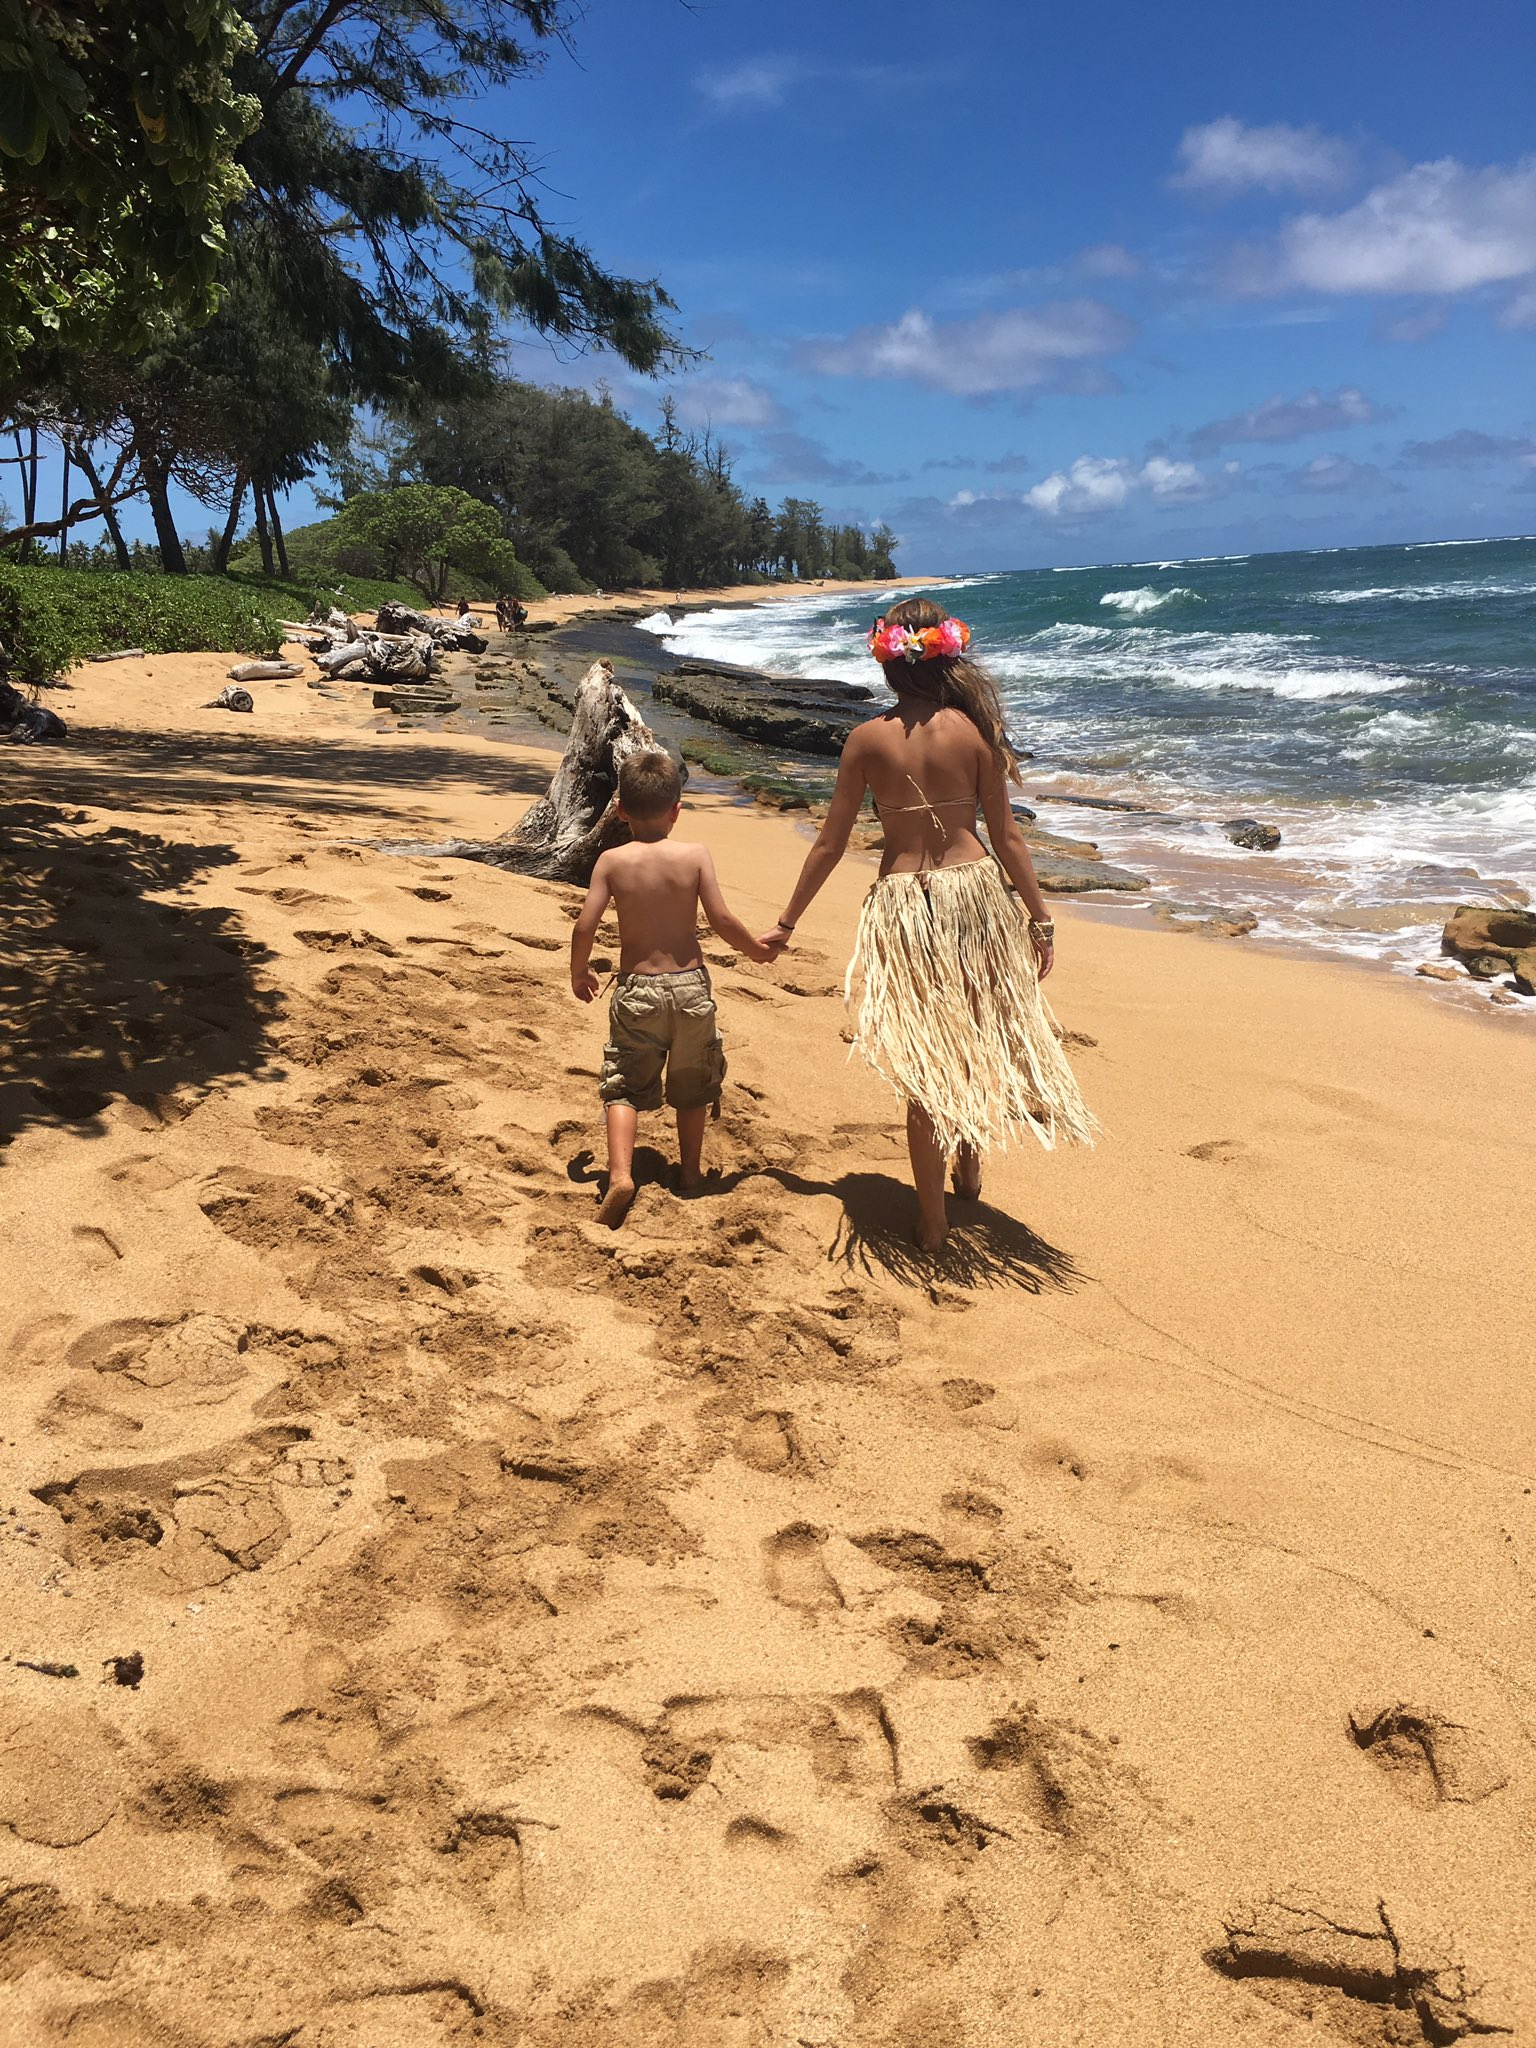 @CoriOrlando1 checking in from Hawaii! #gafe4littles 😊🌸 https://t.co/M2wKMGpX4R